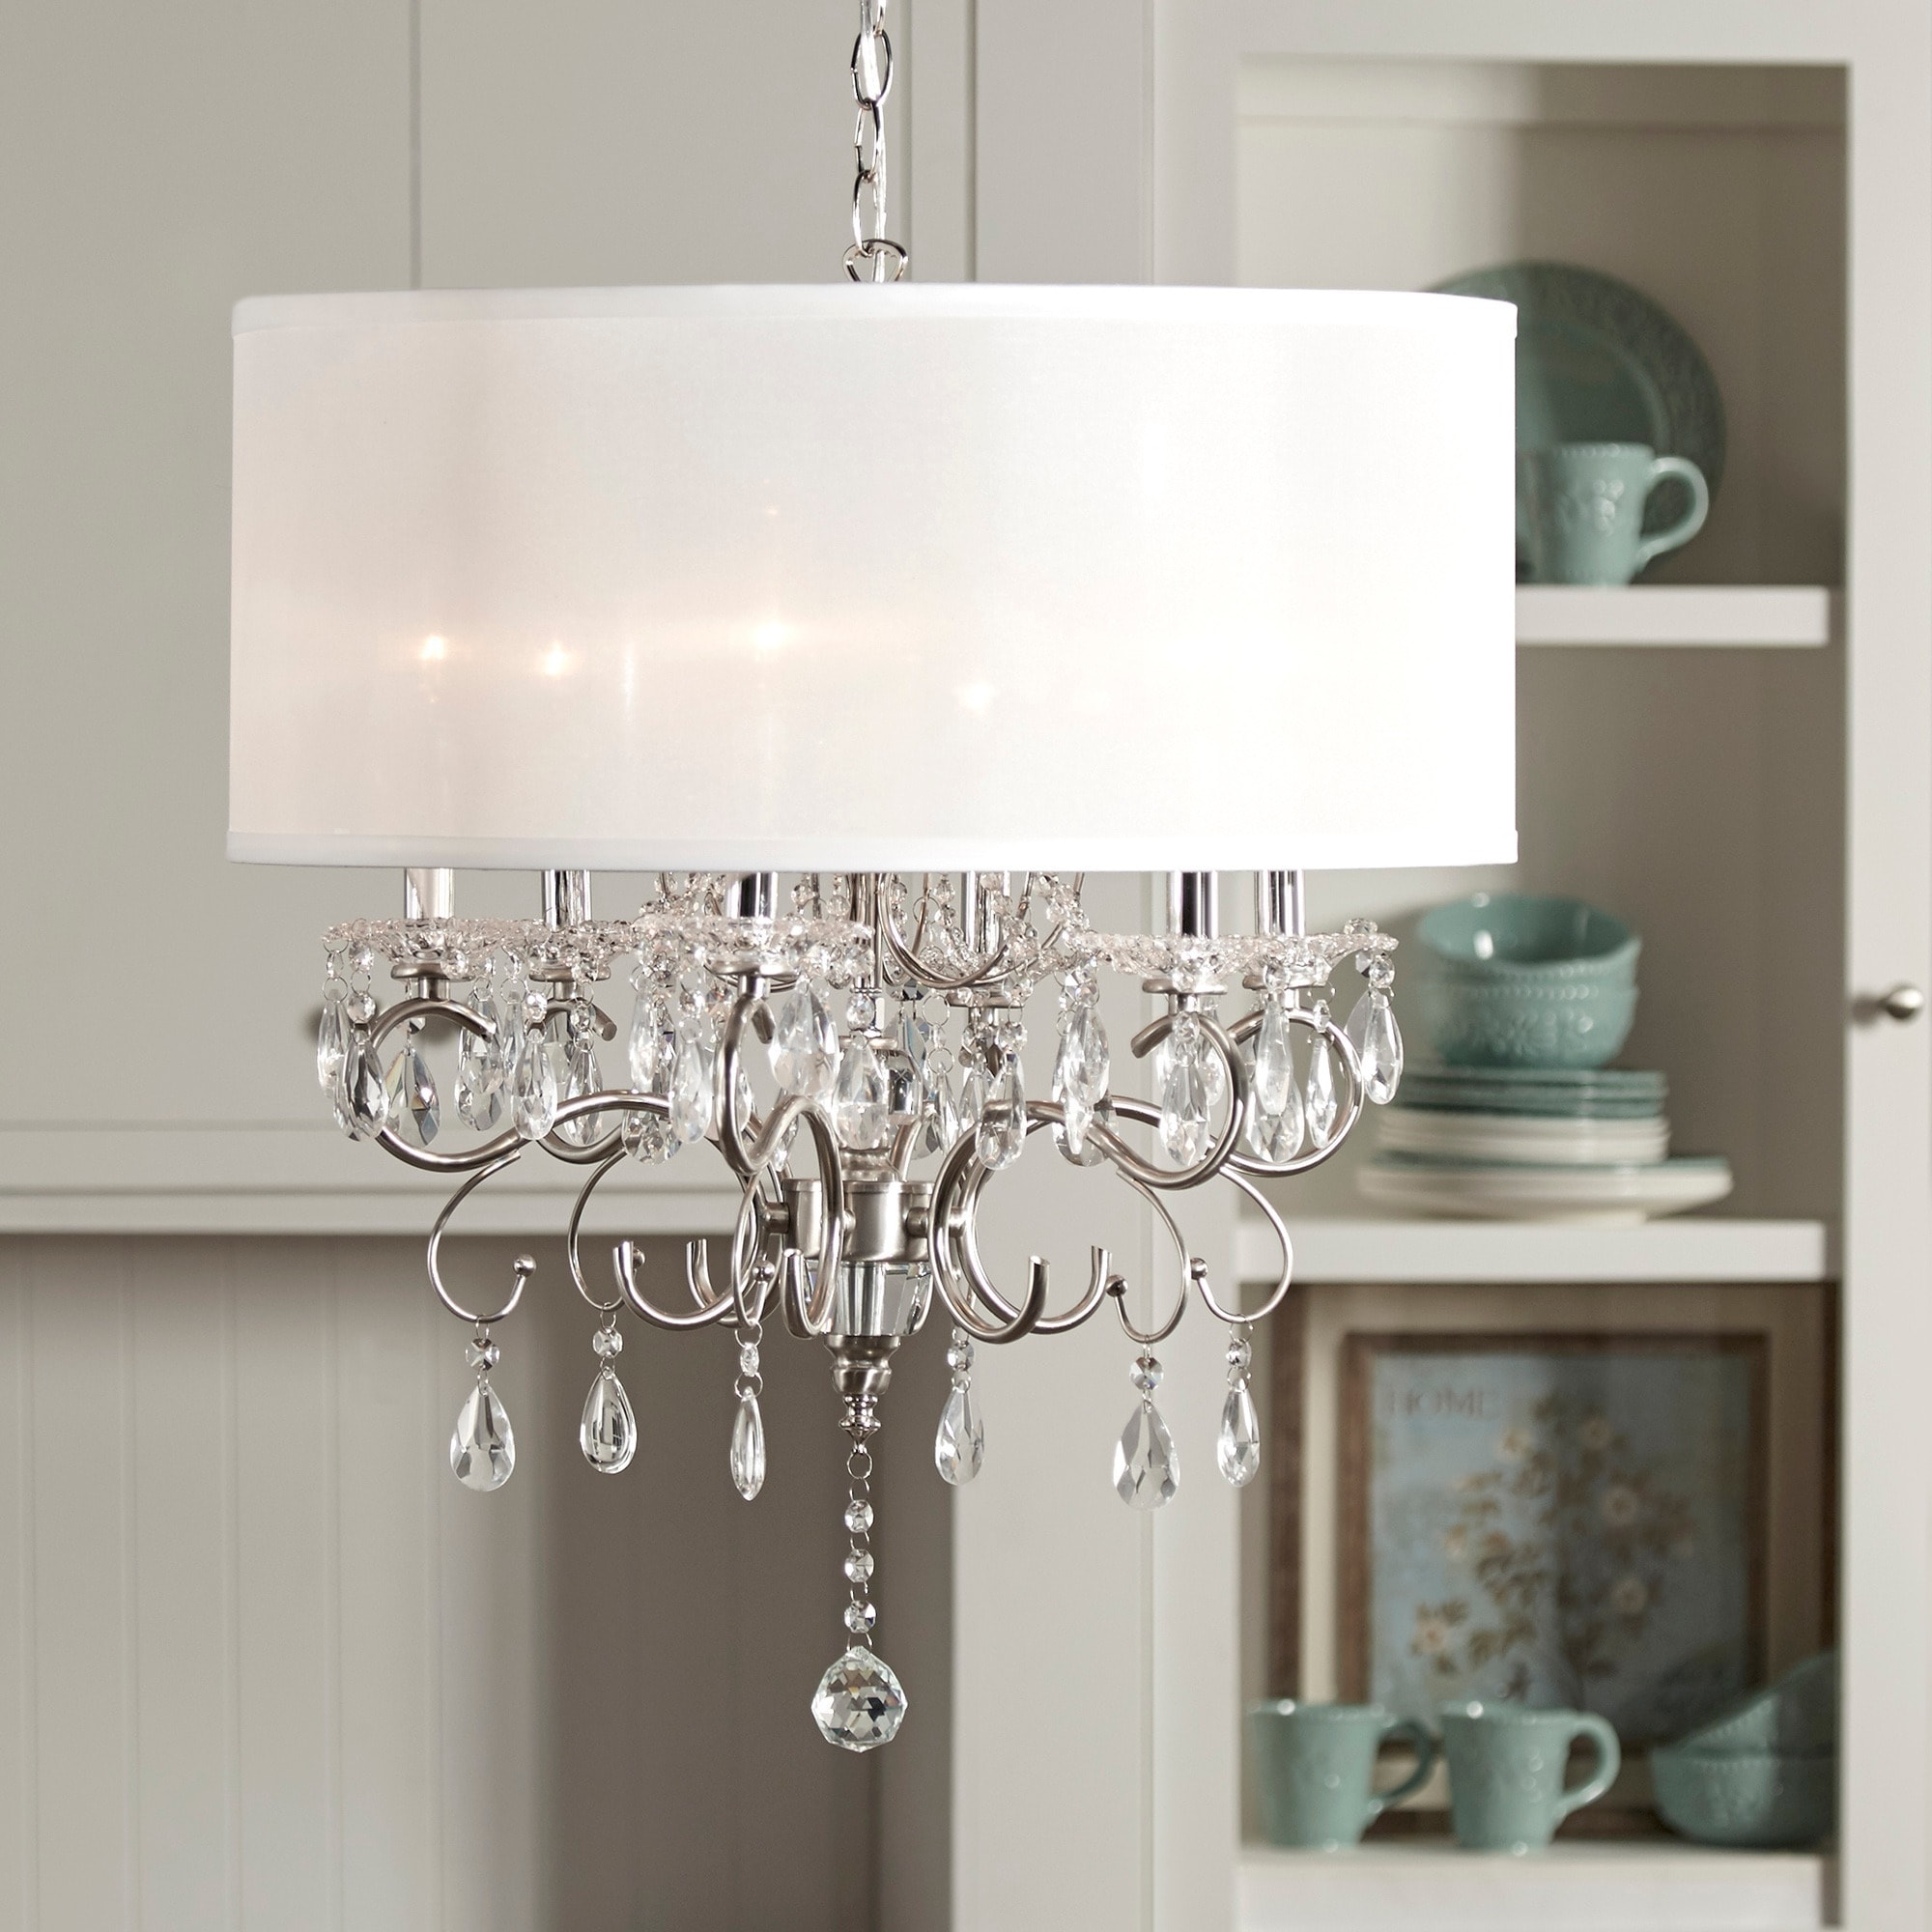 Shop silver mist hanging crystal drum shade chandelier by inspire q shop silver mist hanging crystal drum shade chandelier by inspire q classic free shipping today overstock 6002814 aloadofball